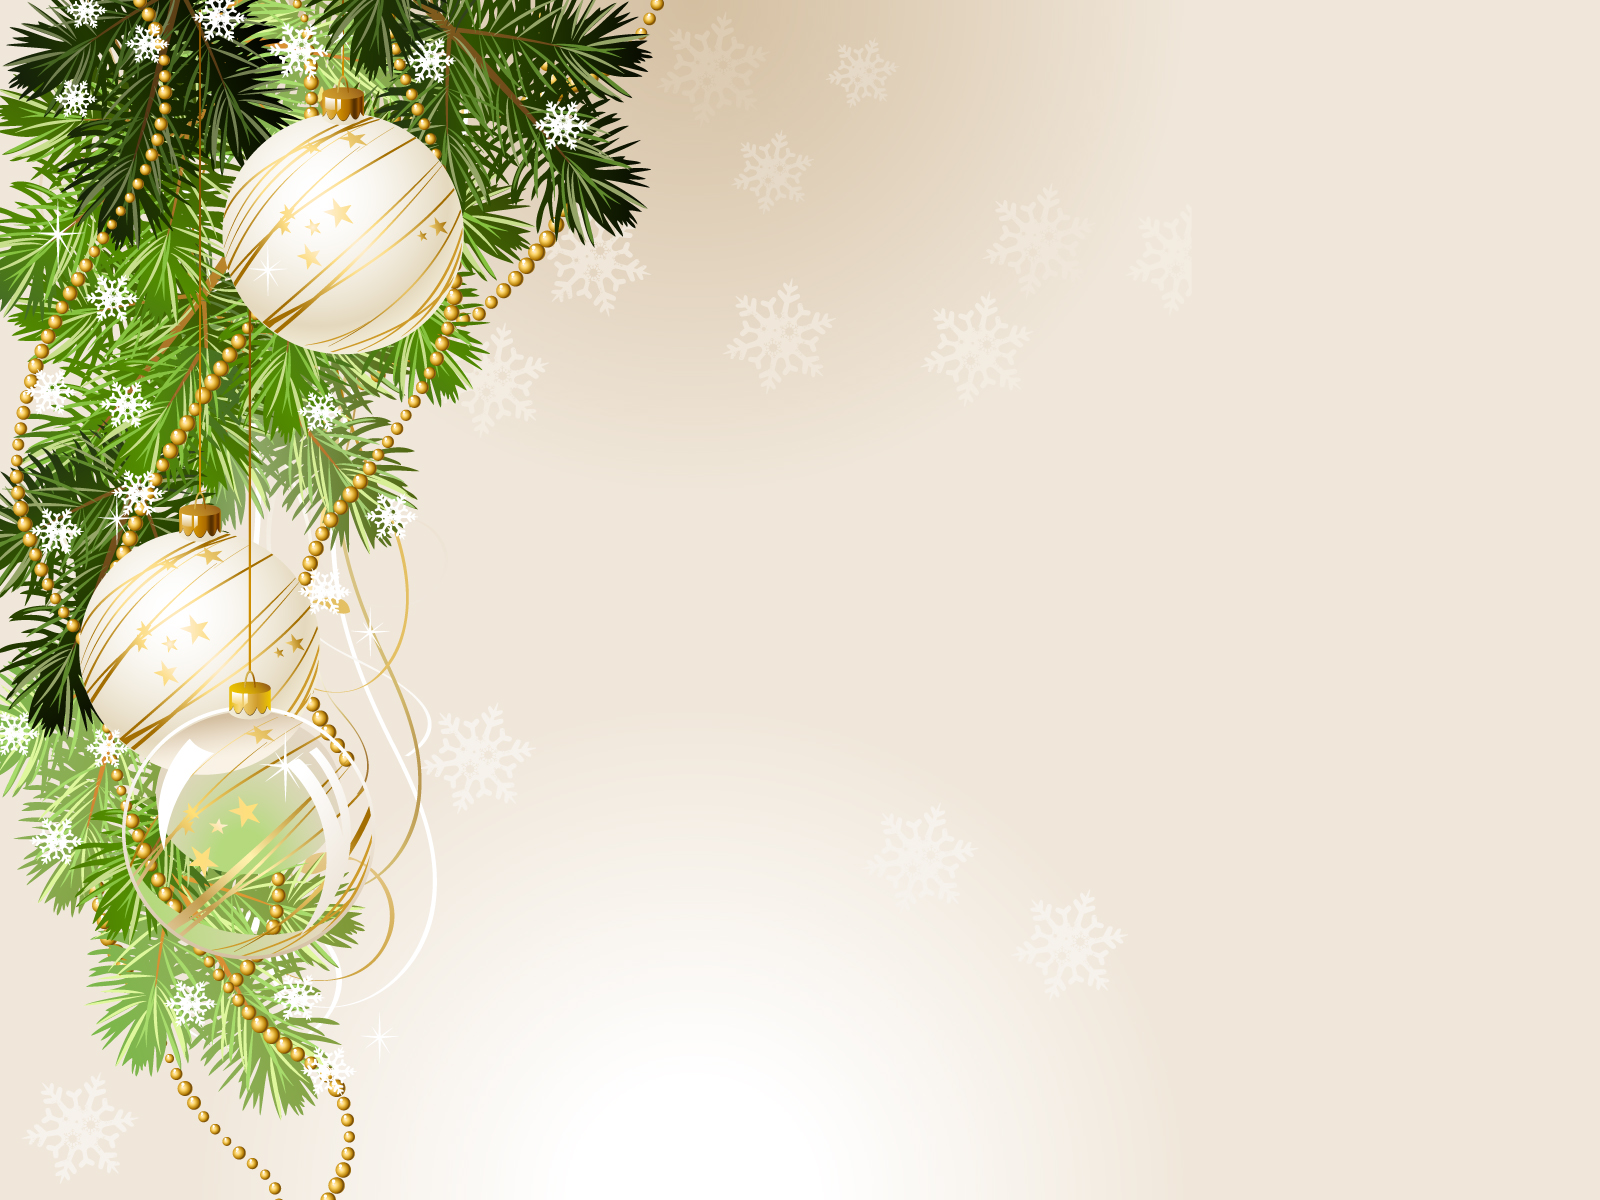 christmas 2013 new years holidays backgrounds christmas design